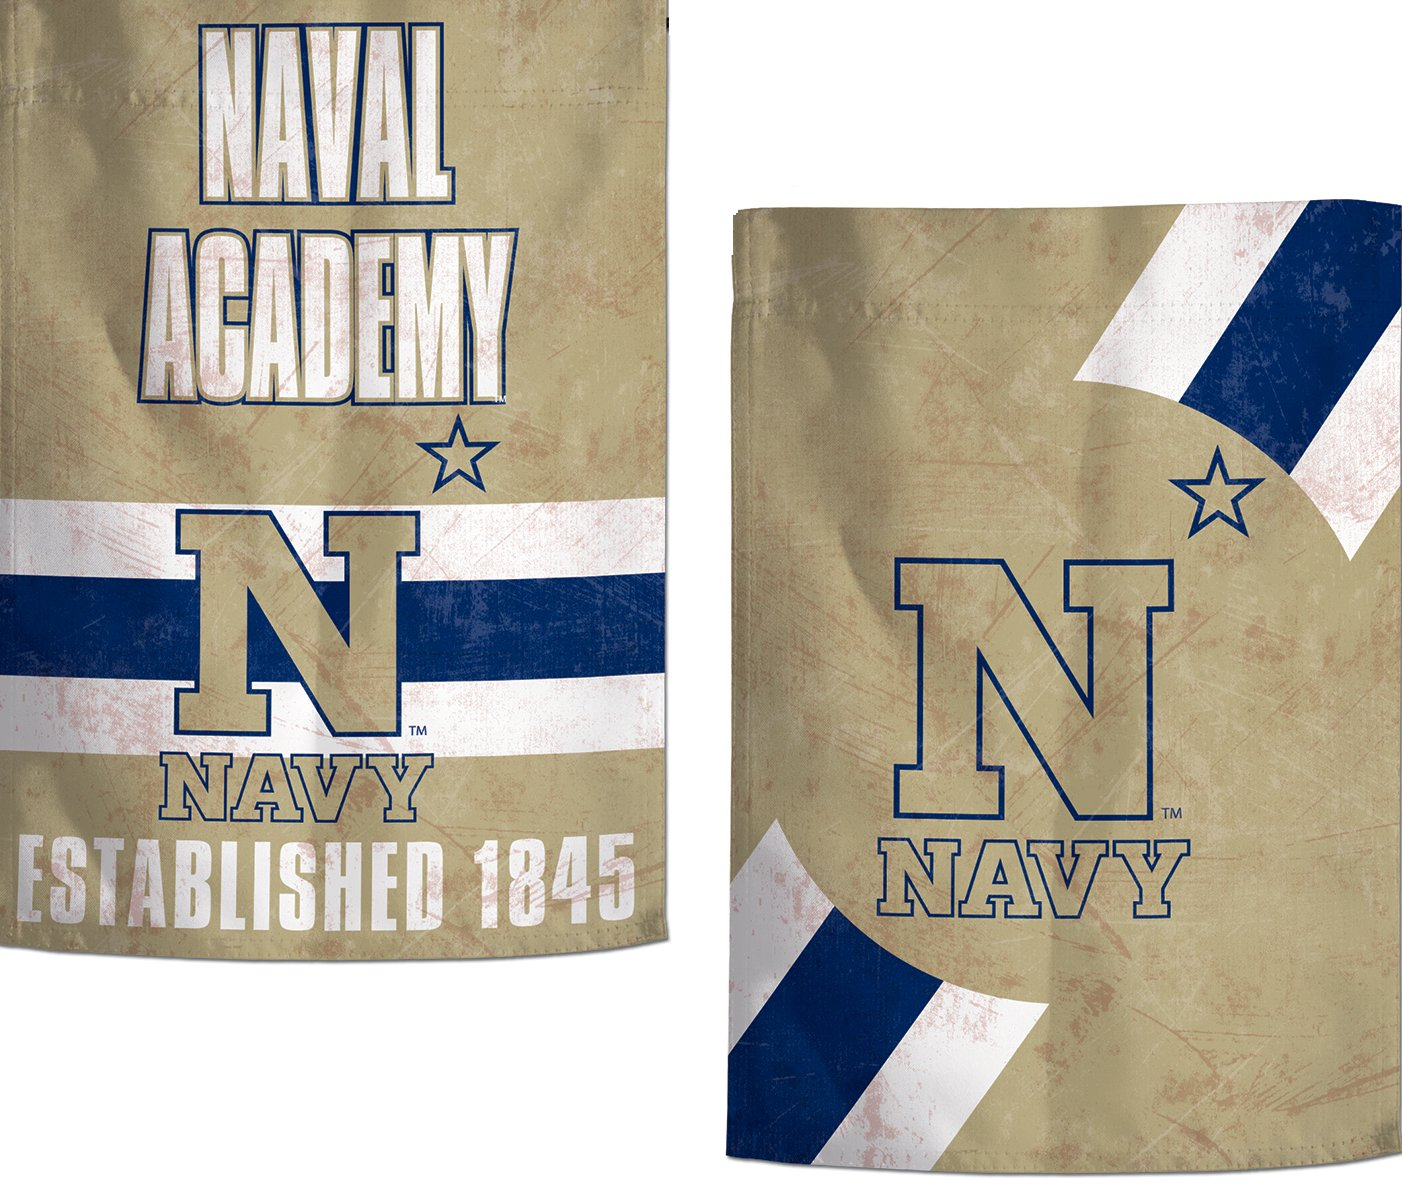 WinCraft U S Naval Academy Garden Flag Vintage Distressed Edition 12.5 x 18 inches 2 Sided